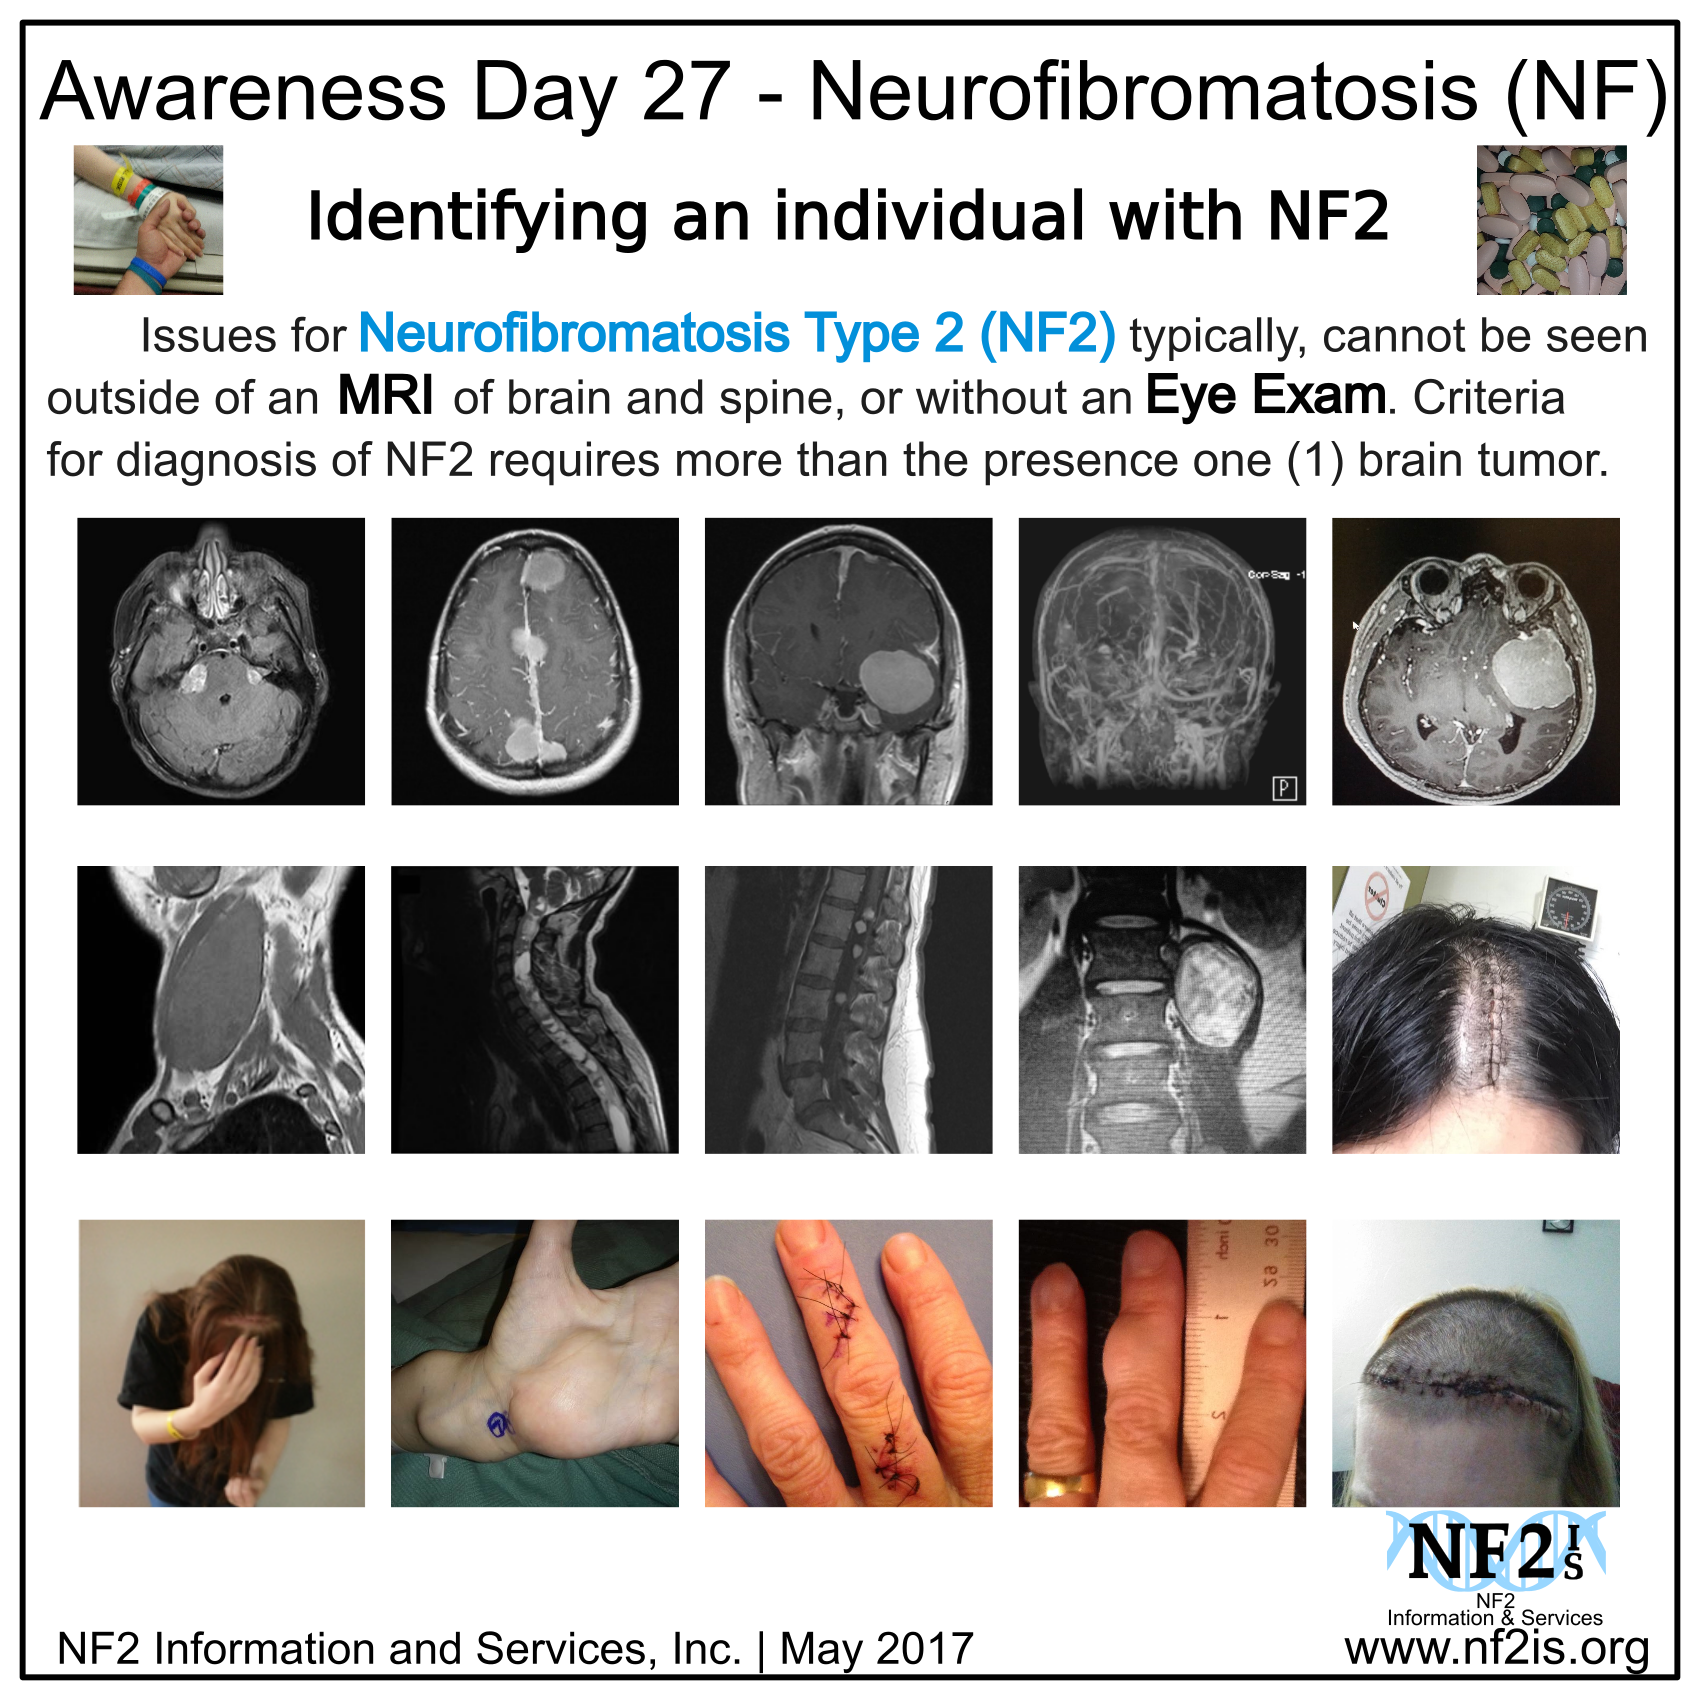 NF2, head stitches, brain tumors, body tumors, MRI, Photos